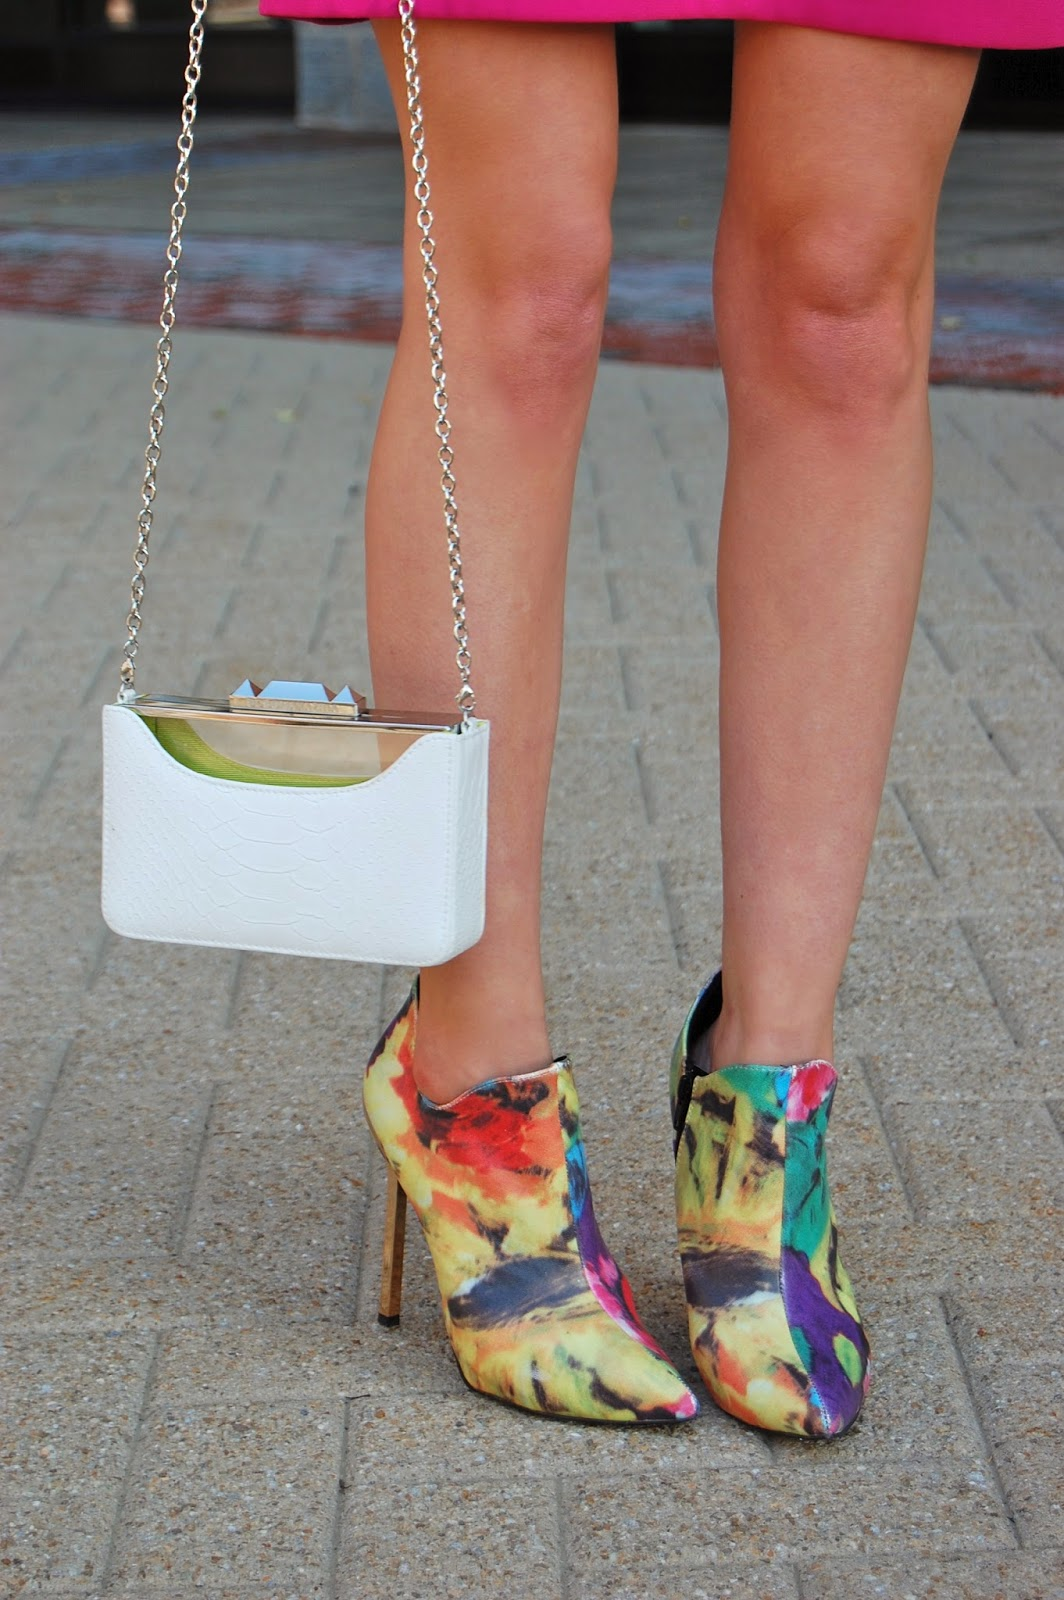 Wearing Privileged Mulligan Floral Booties, BCBG Maxazria Lucite Clutch, Summer 2014 trends